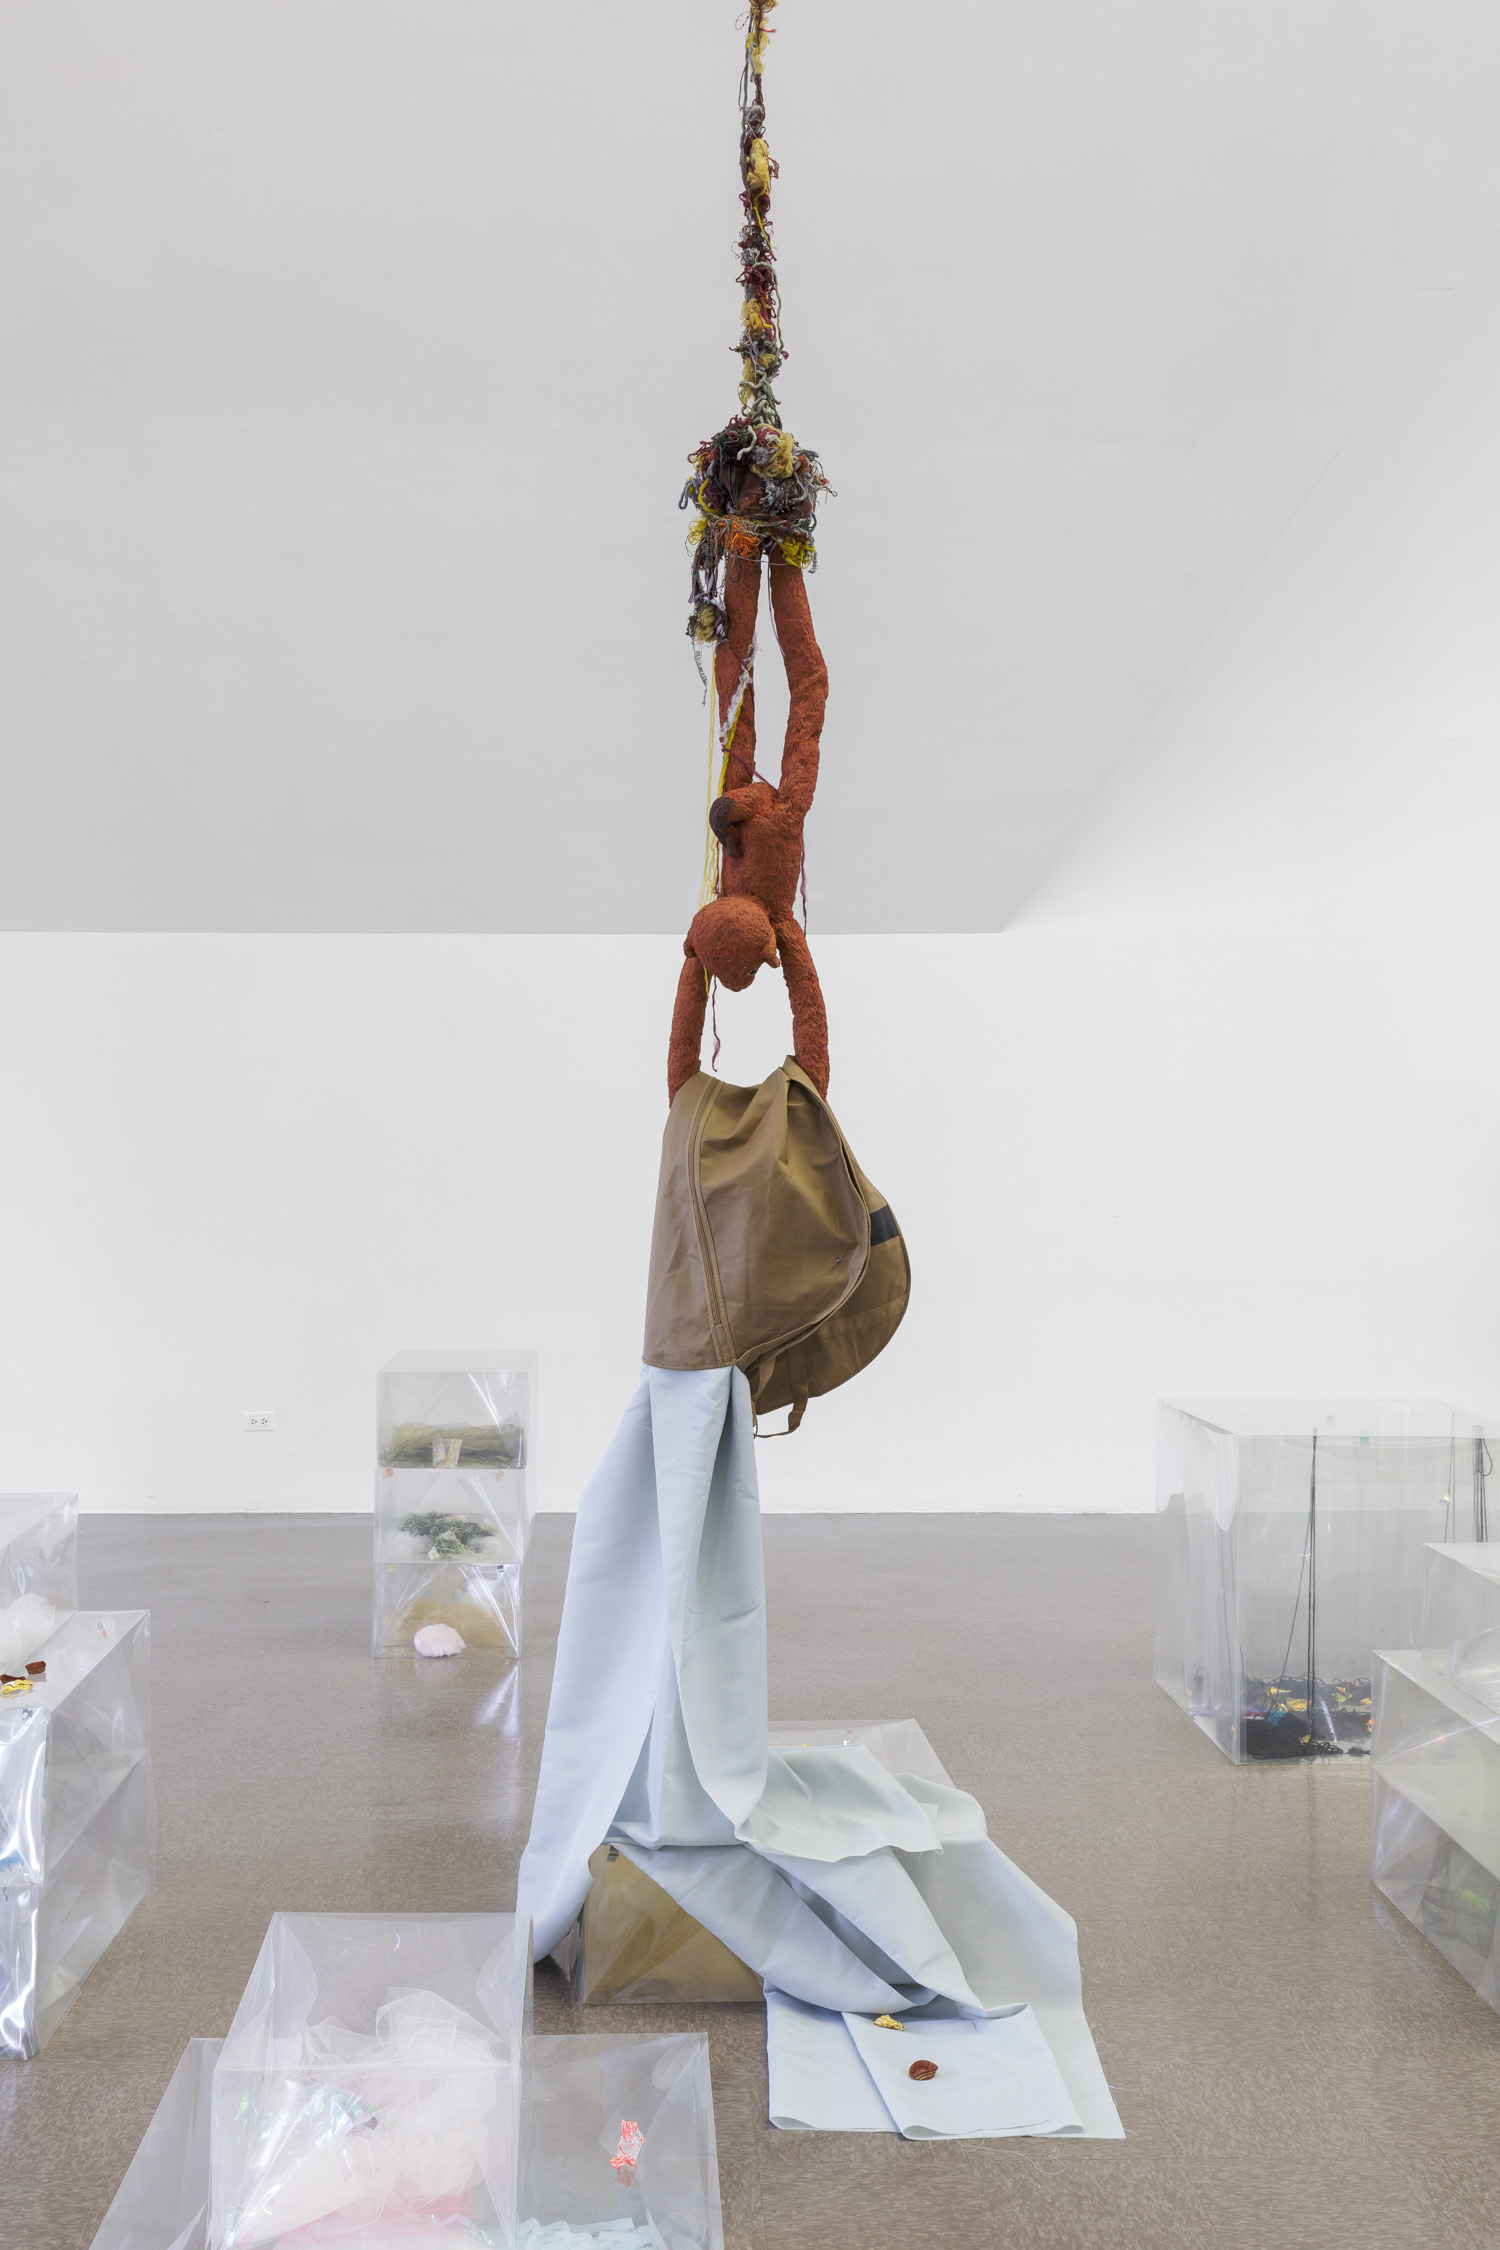 Siena rubber figure, legs dangling from a line of yarn suspended at the ceiling, holds cloth in its arms